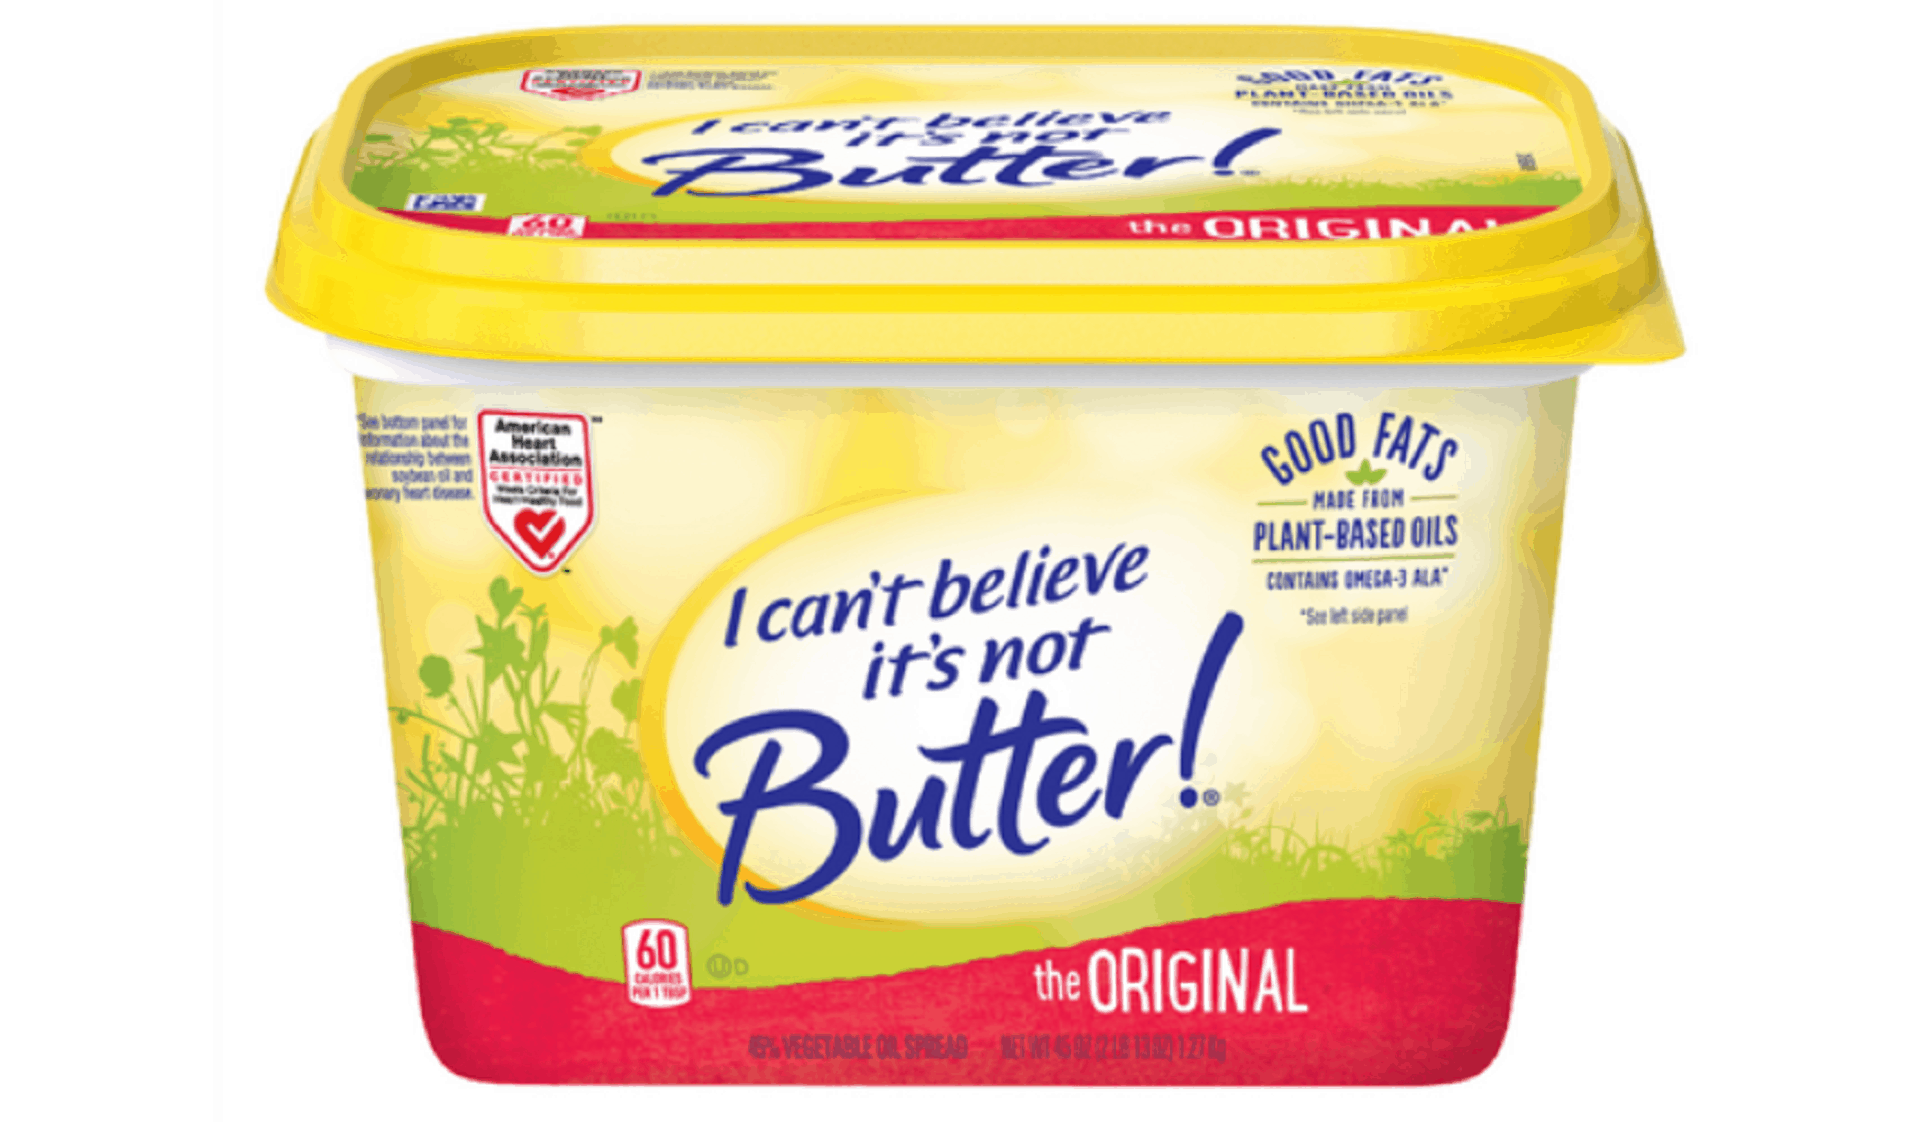 can't believe its not butter